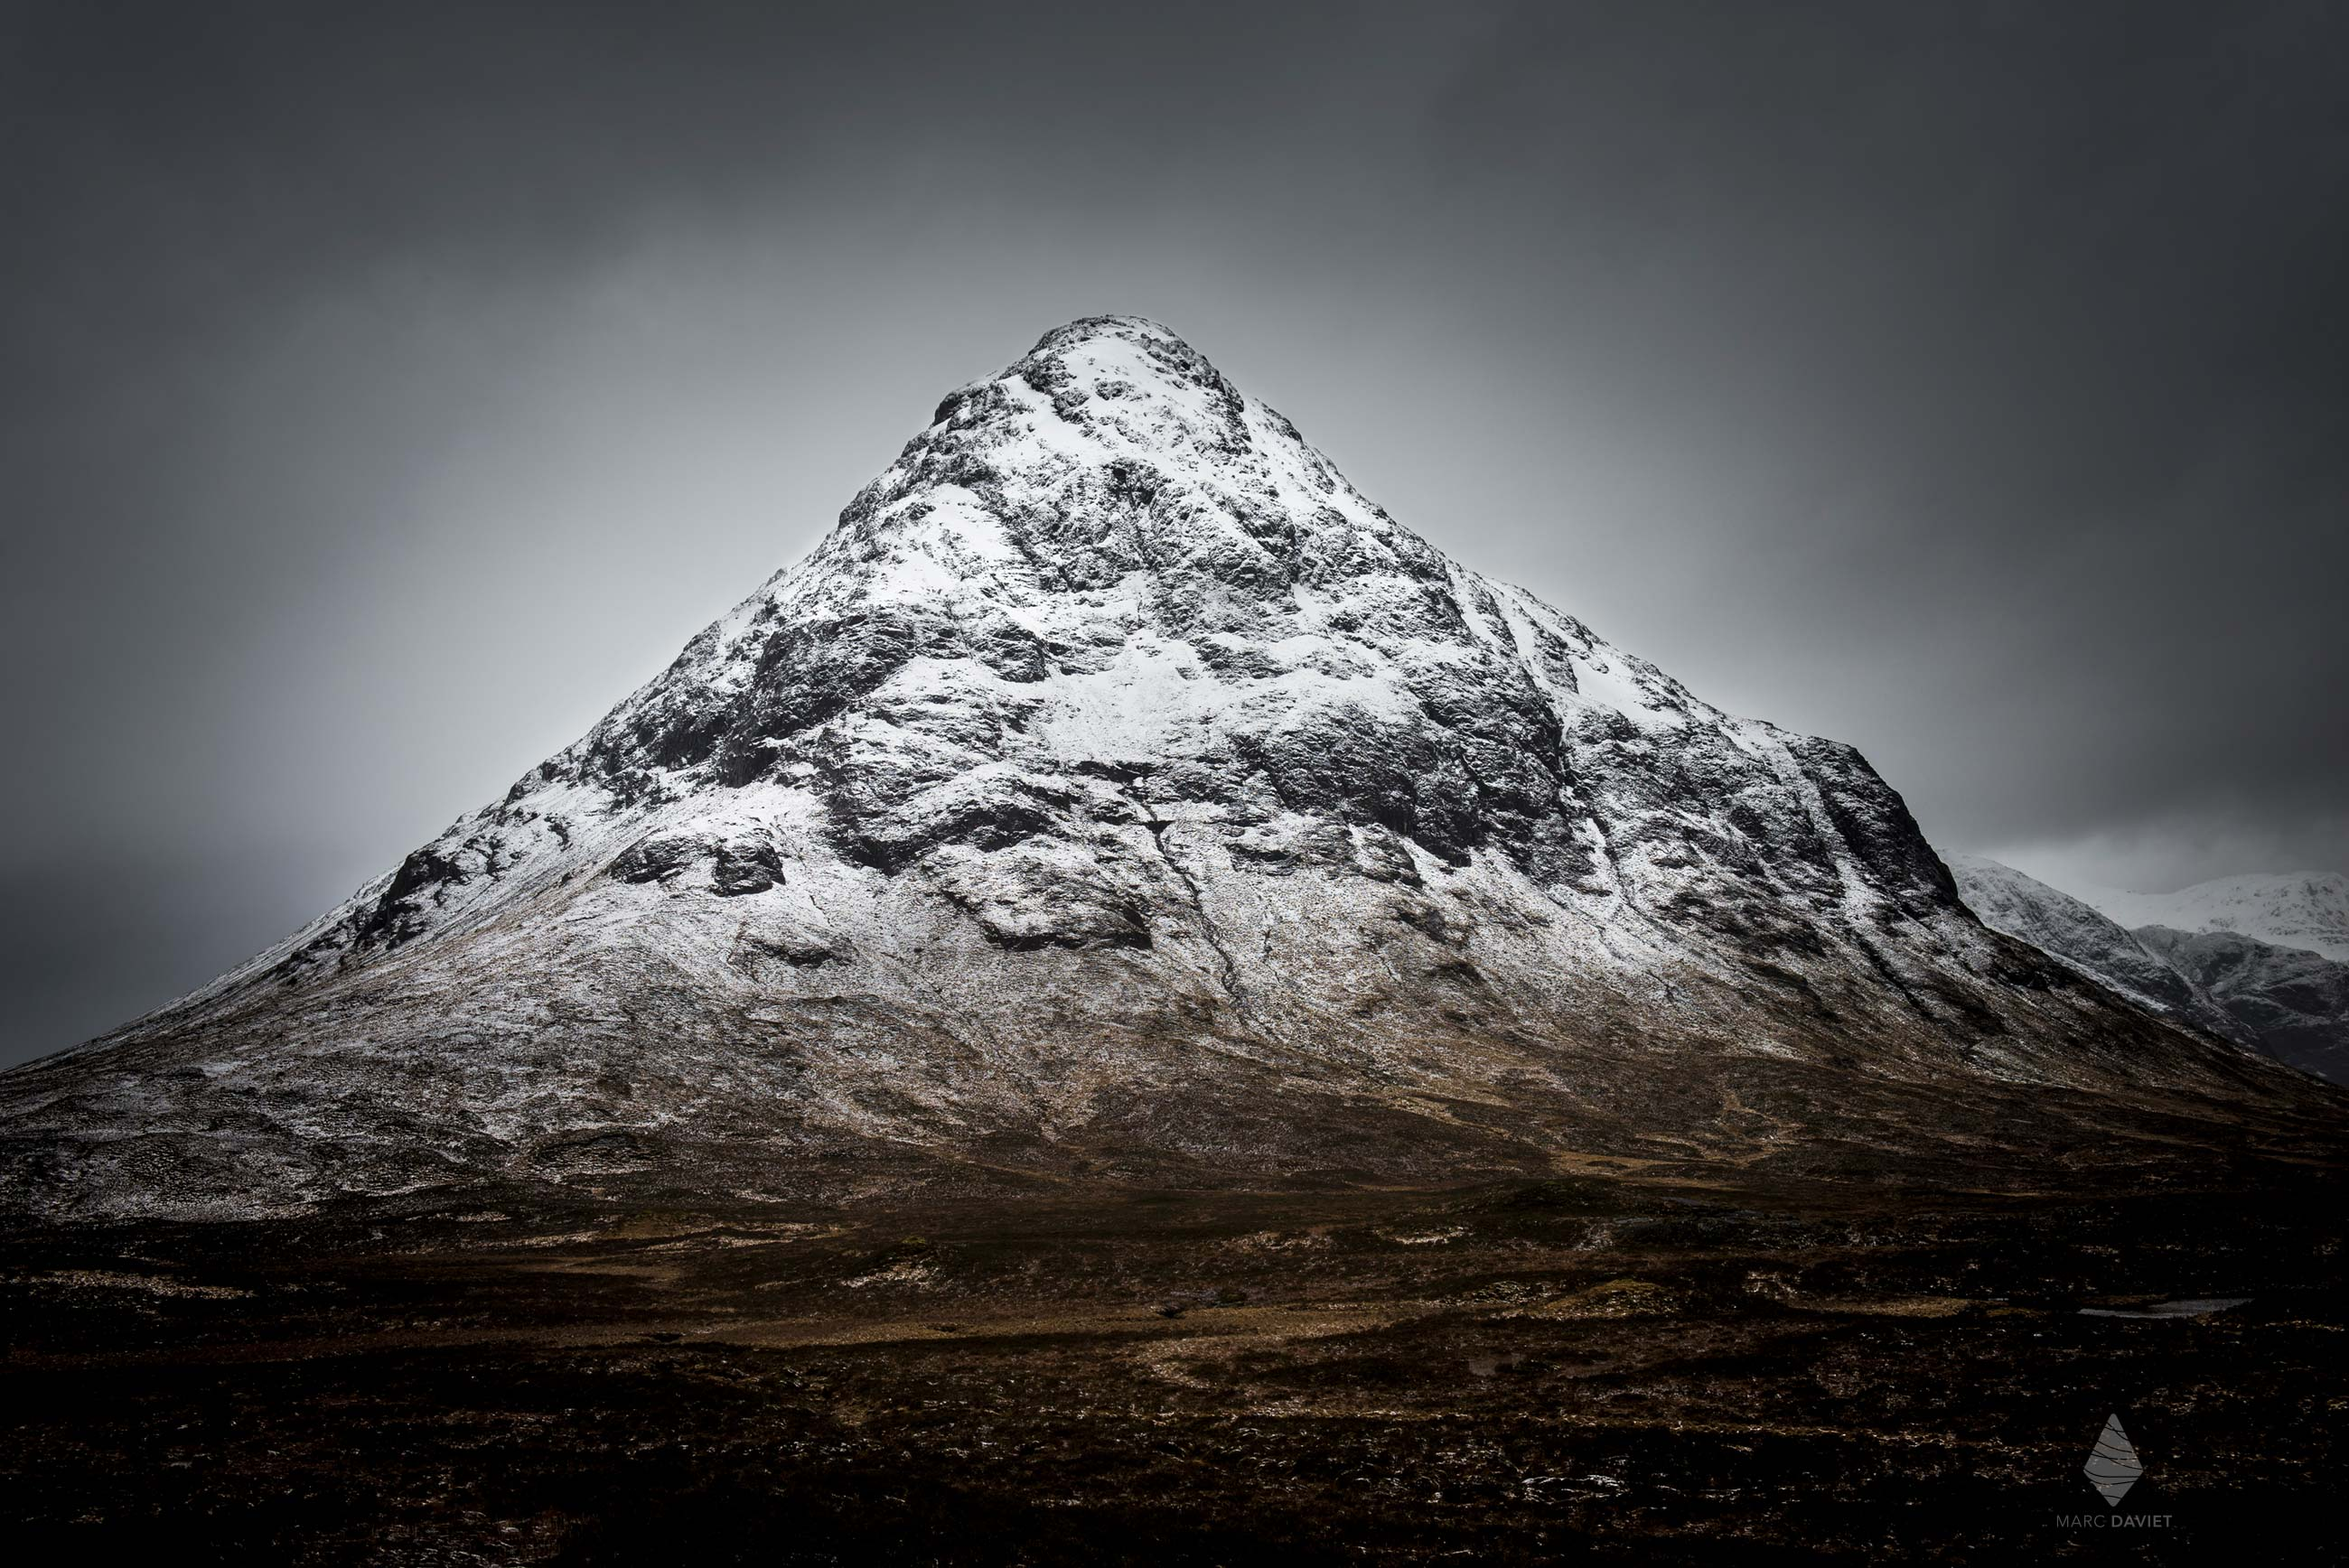 Buachaille Etive Mor - Scotland - Marc Daviet Photography